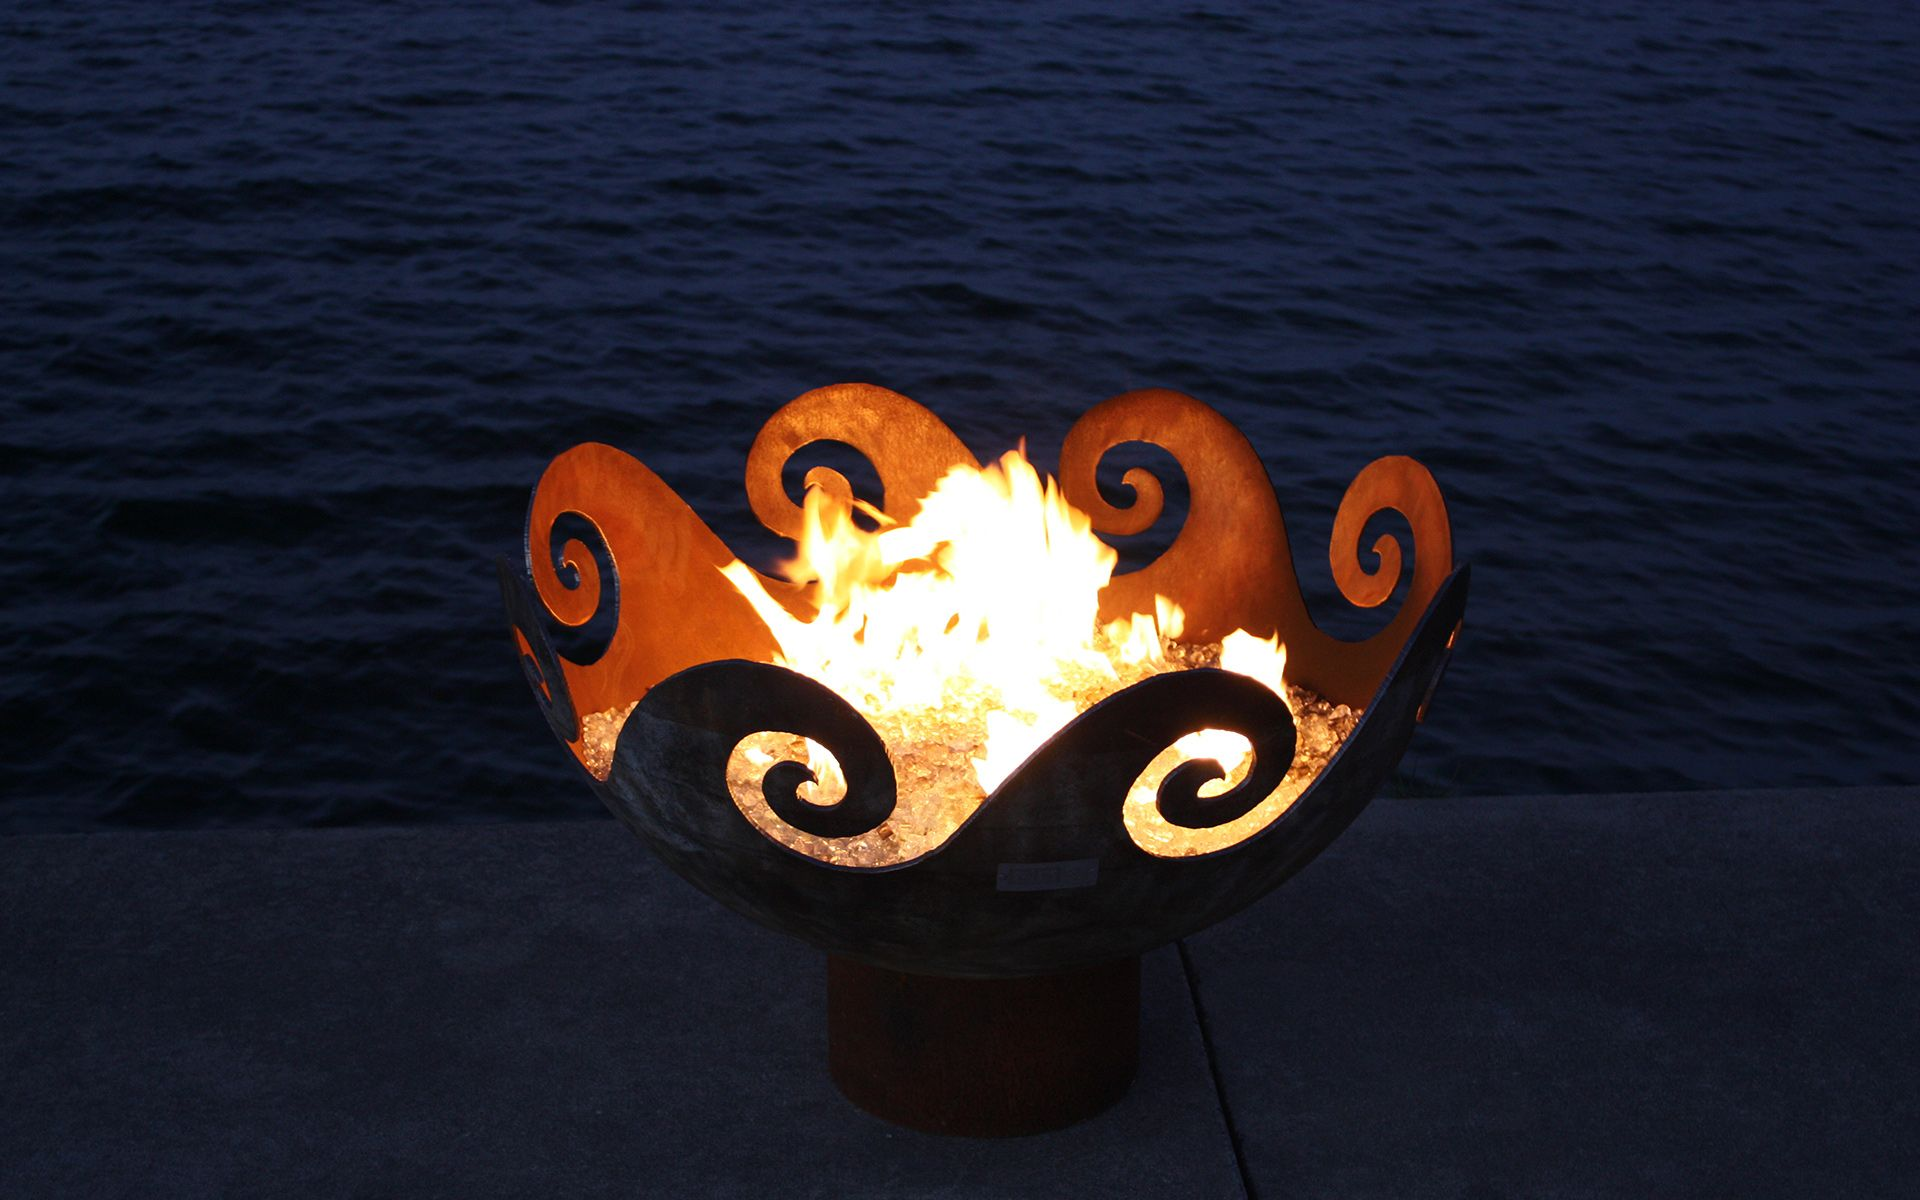 SHOP FOR SCULPTURAL FIREBOWLS – WAVES O FIRE